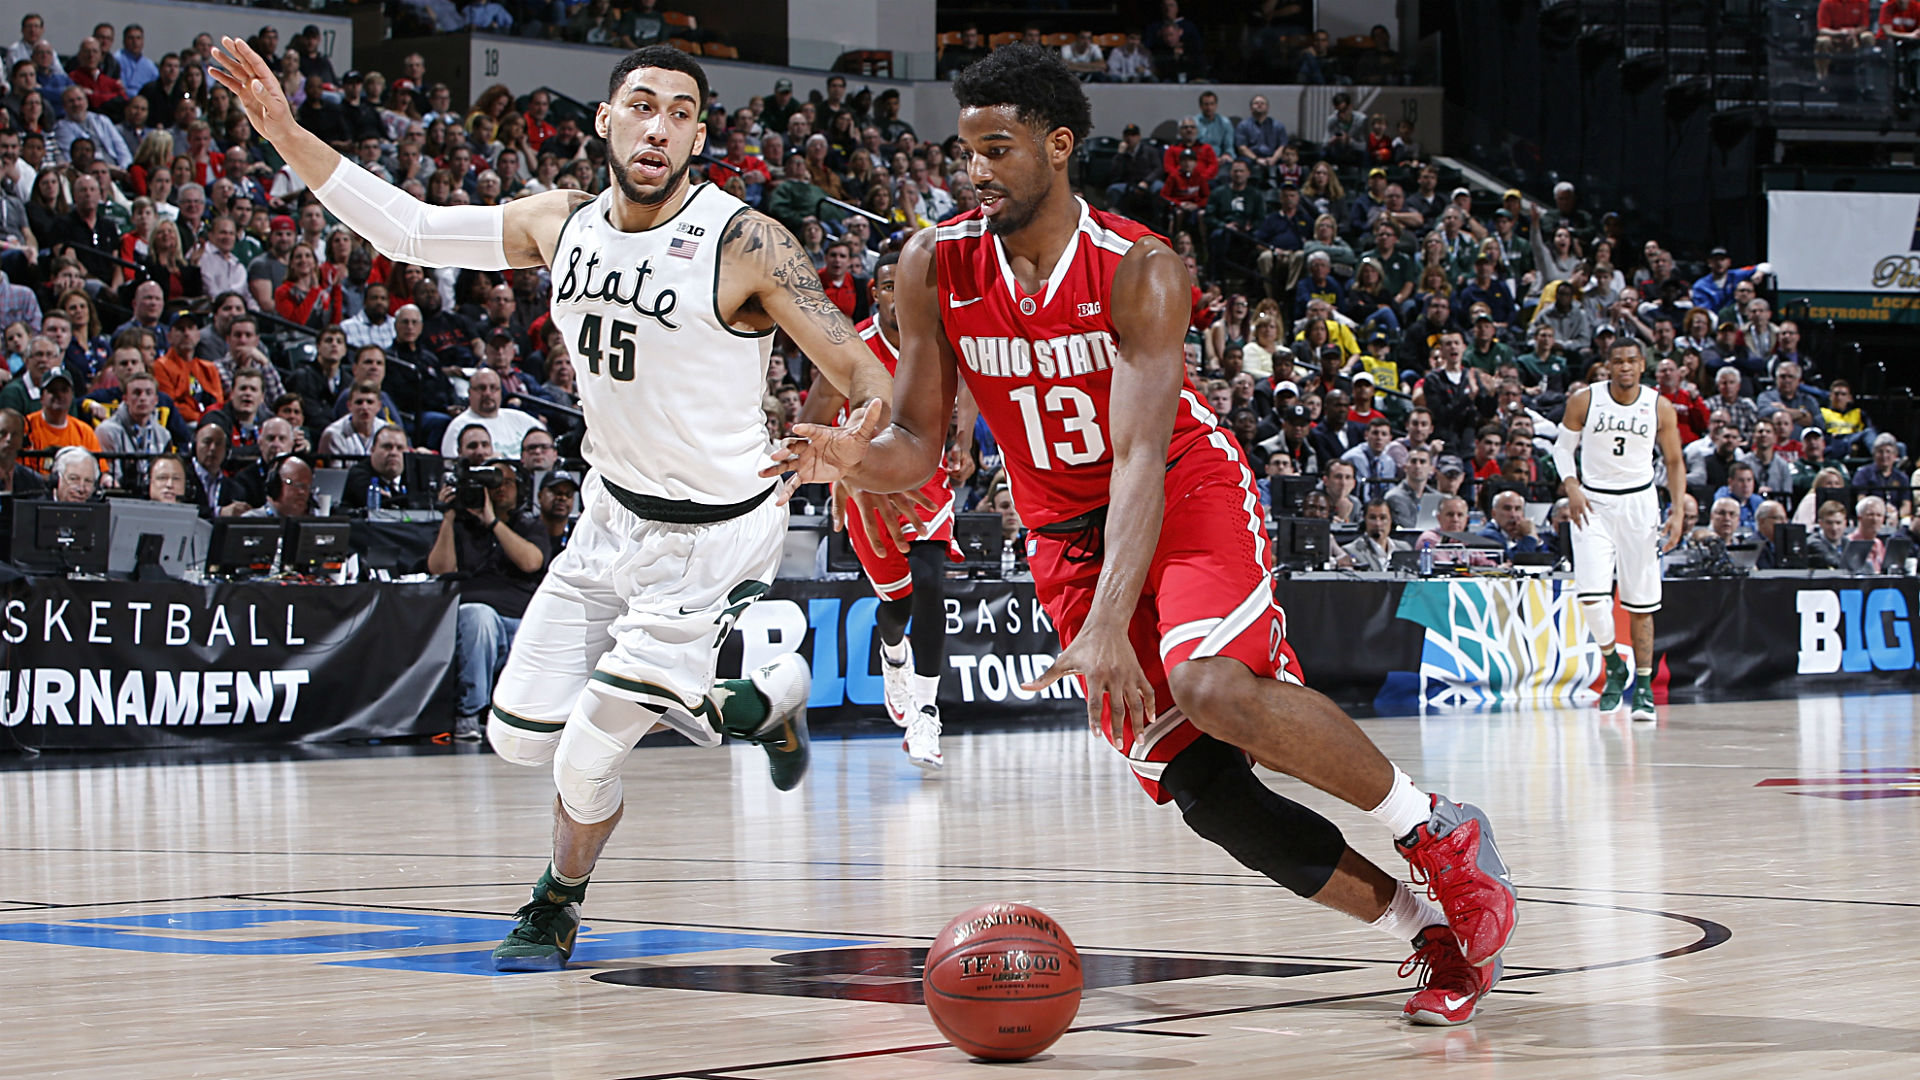 Men's Basketball: Ohio State guard JaQuan Lyle taken into custody Saturday morning